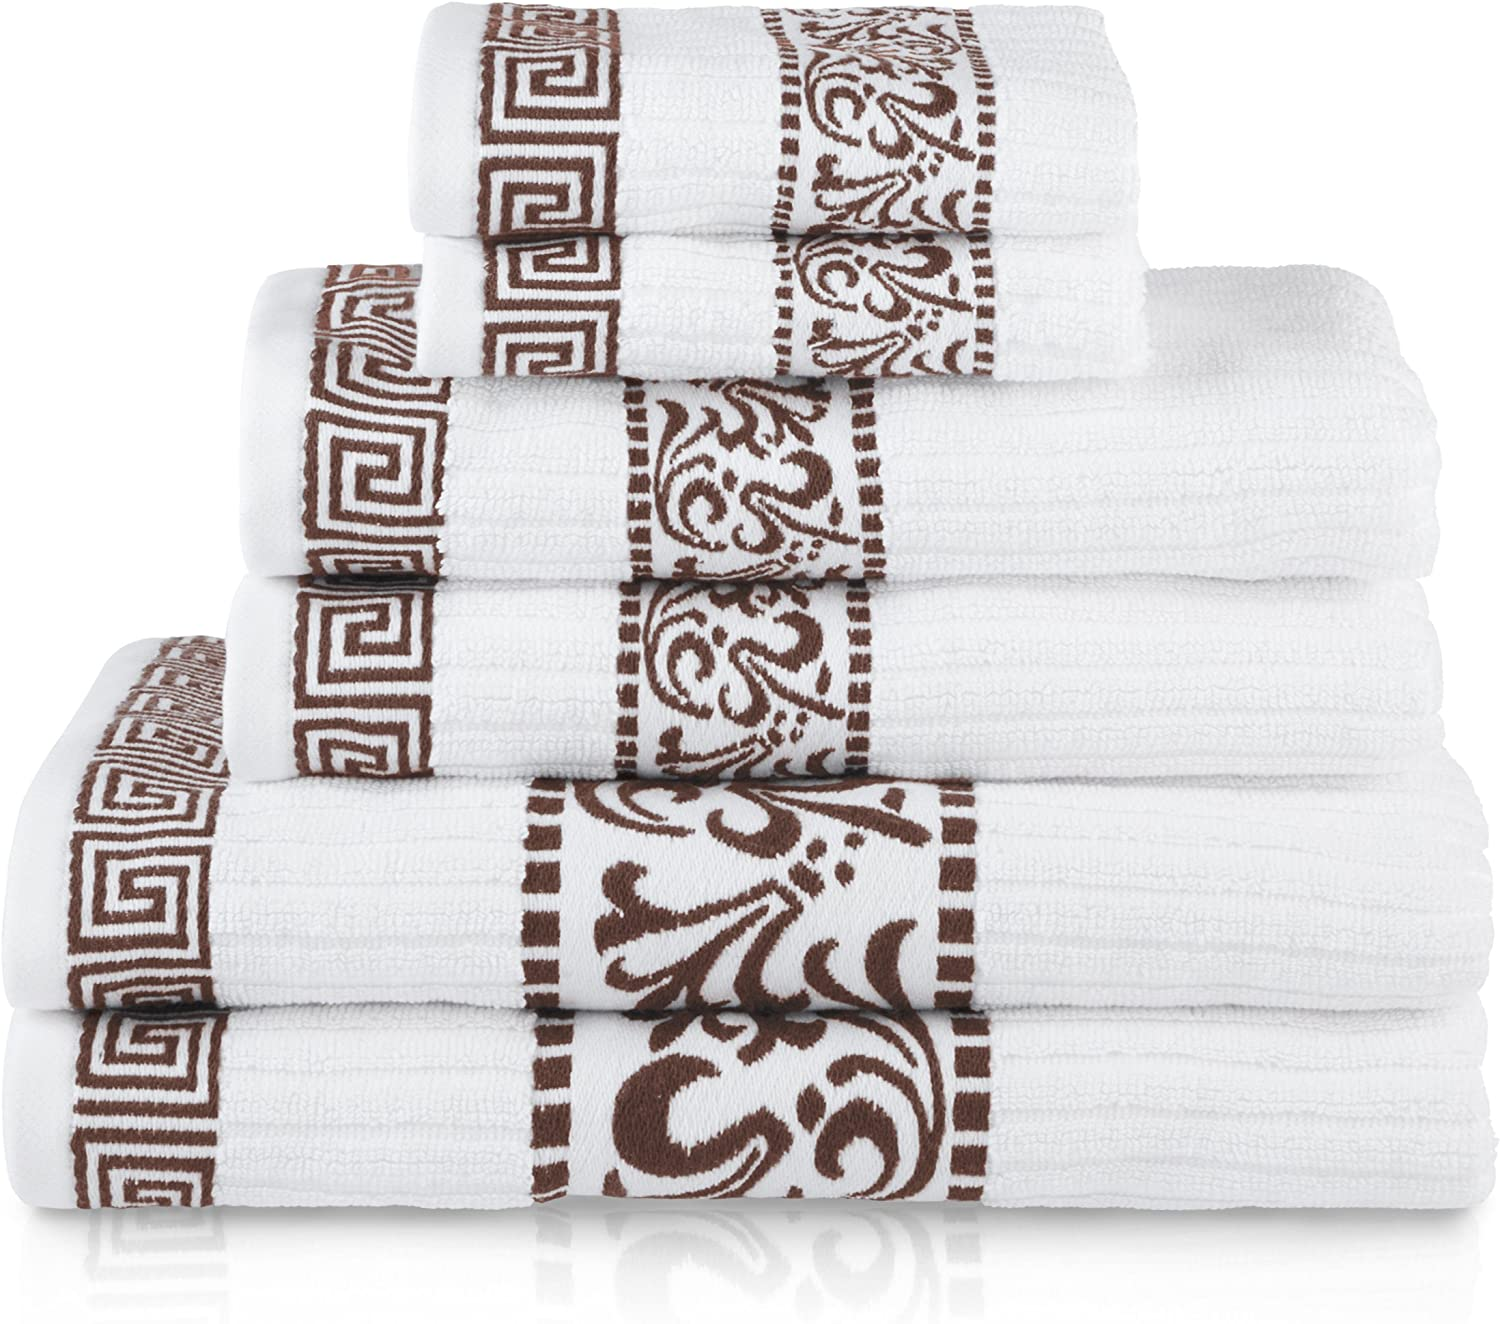 Superior Athens 100% Cotton, Soft, Extremely Absorbent, Beautiful 6 Piece Towel Set, Chocolate